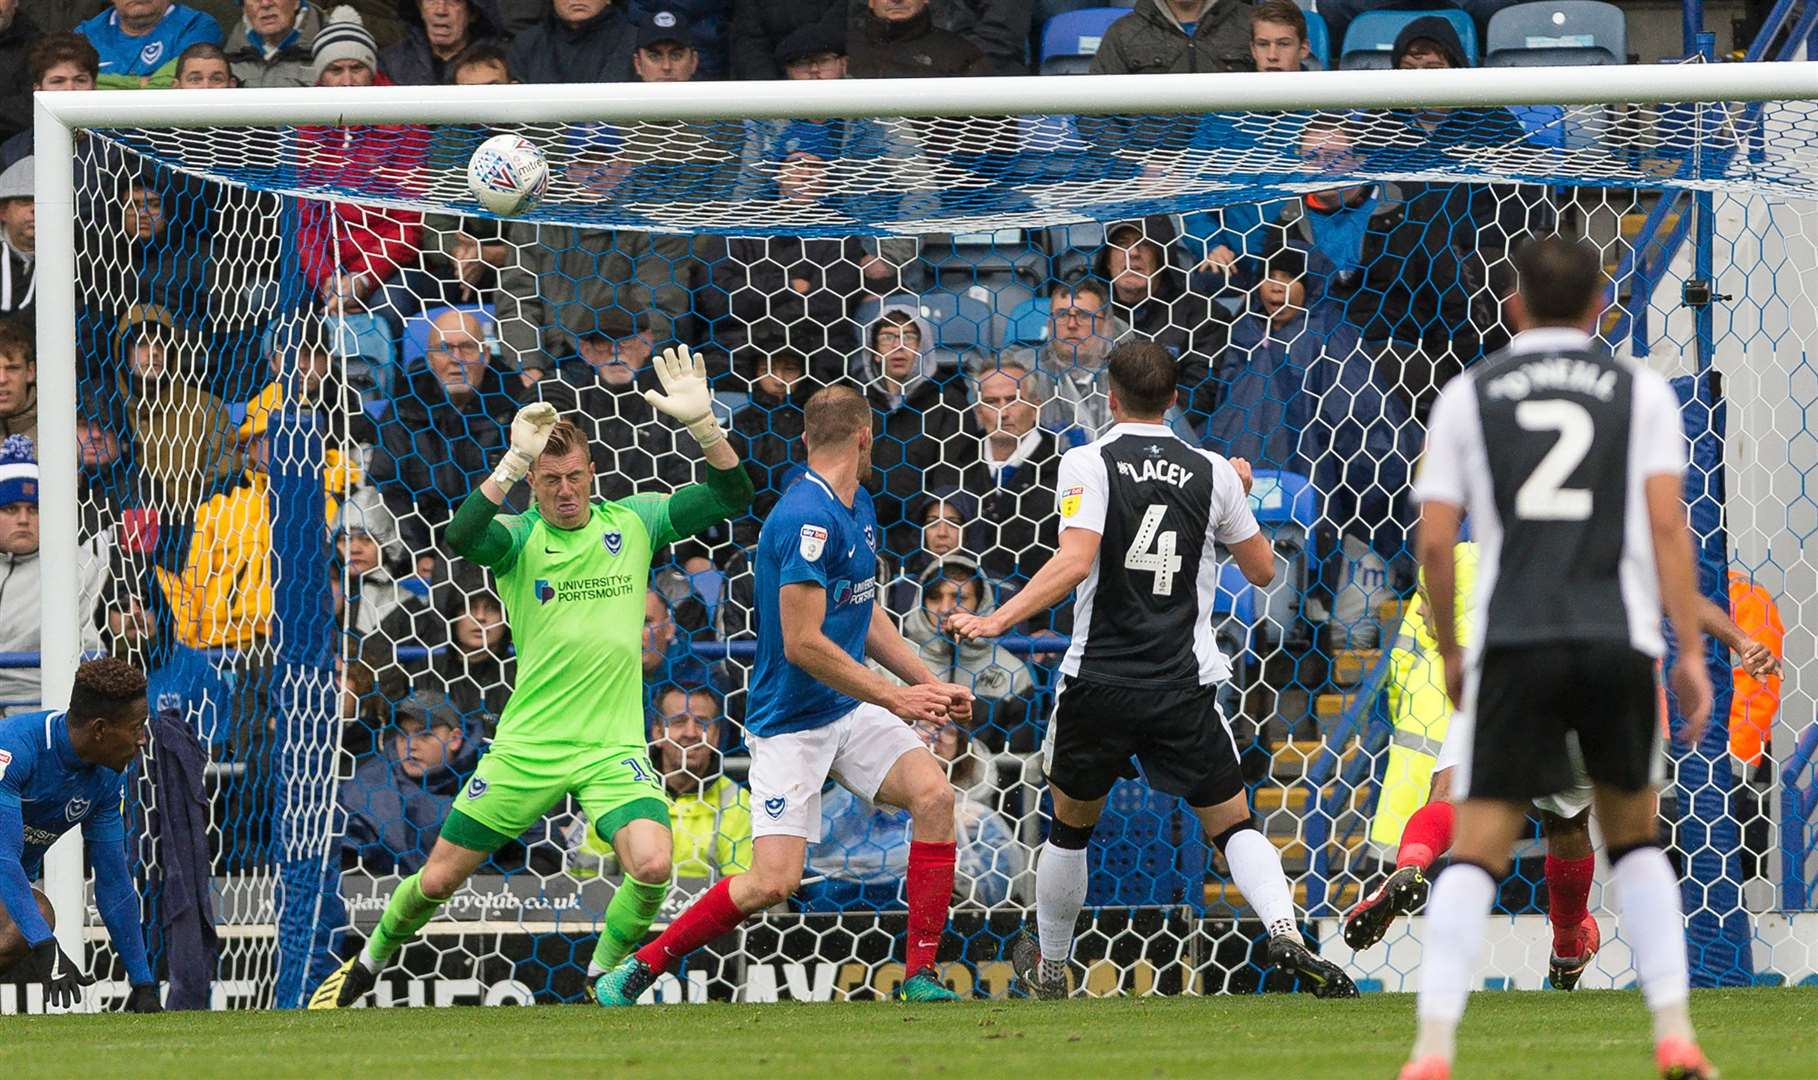 Alex Lacey scores the second goal on Saturday at Fratton Park Picture: Ady Kerry